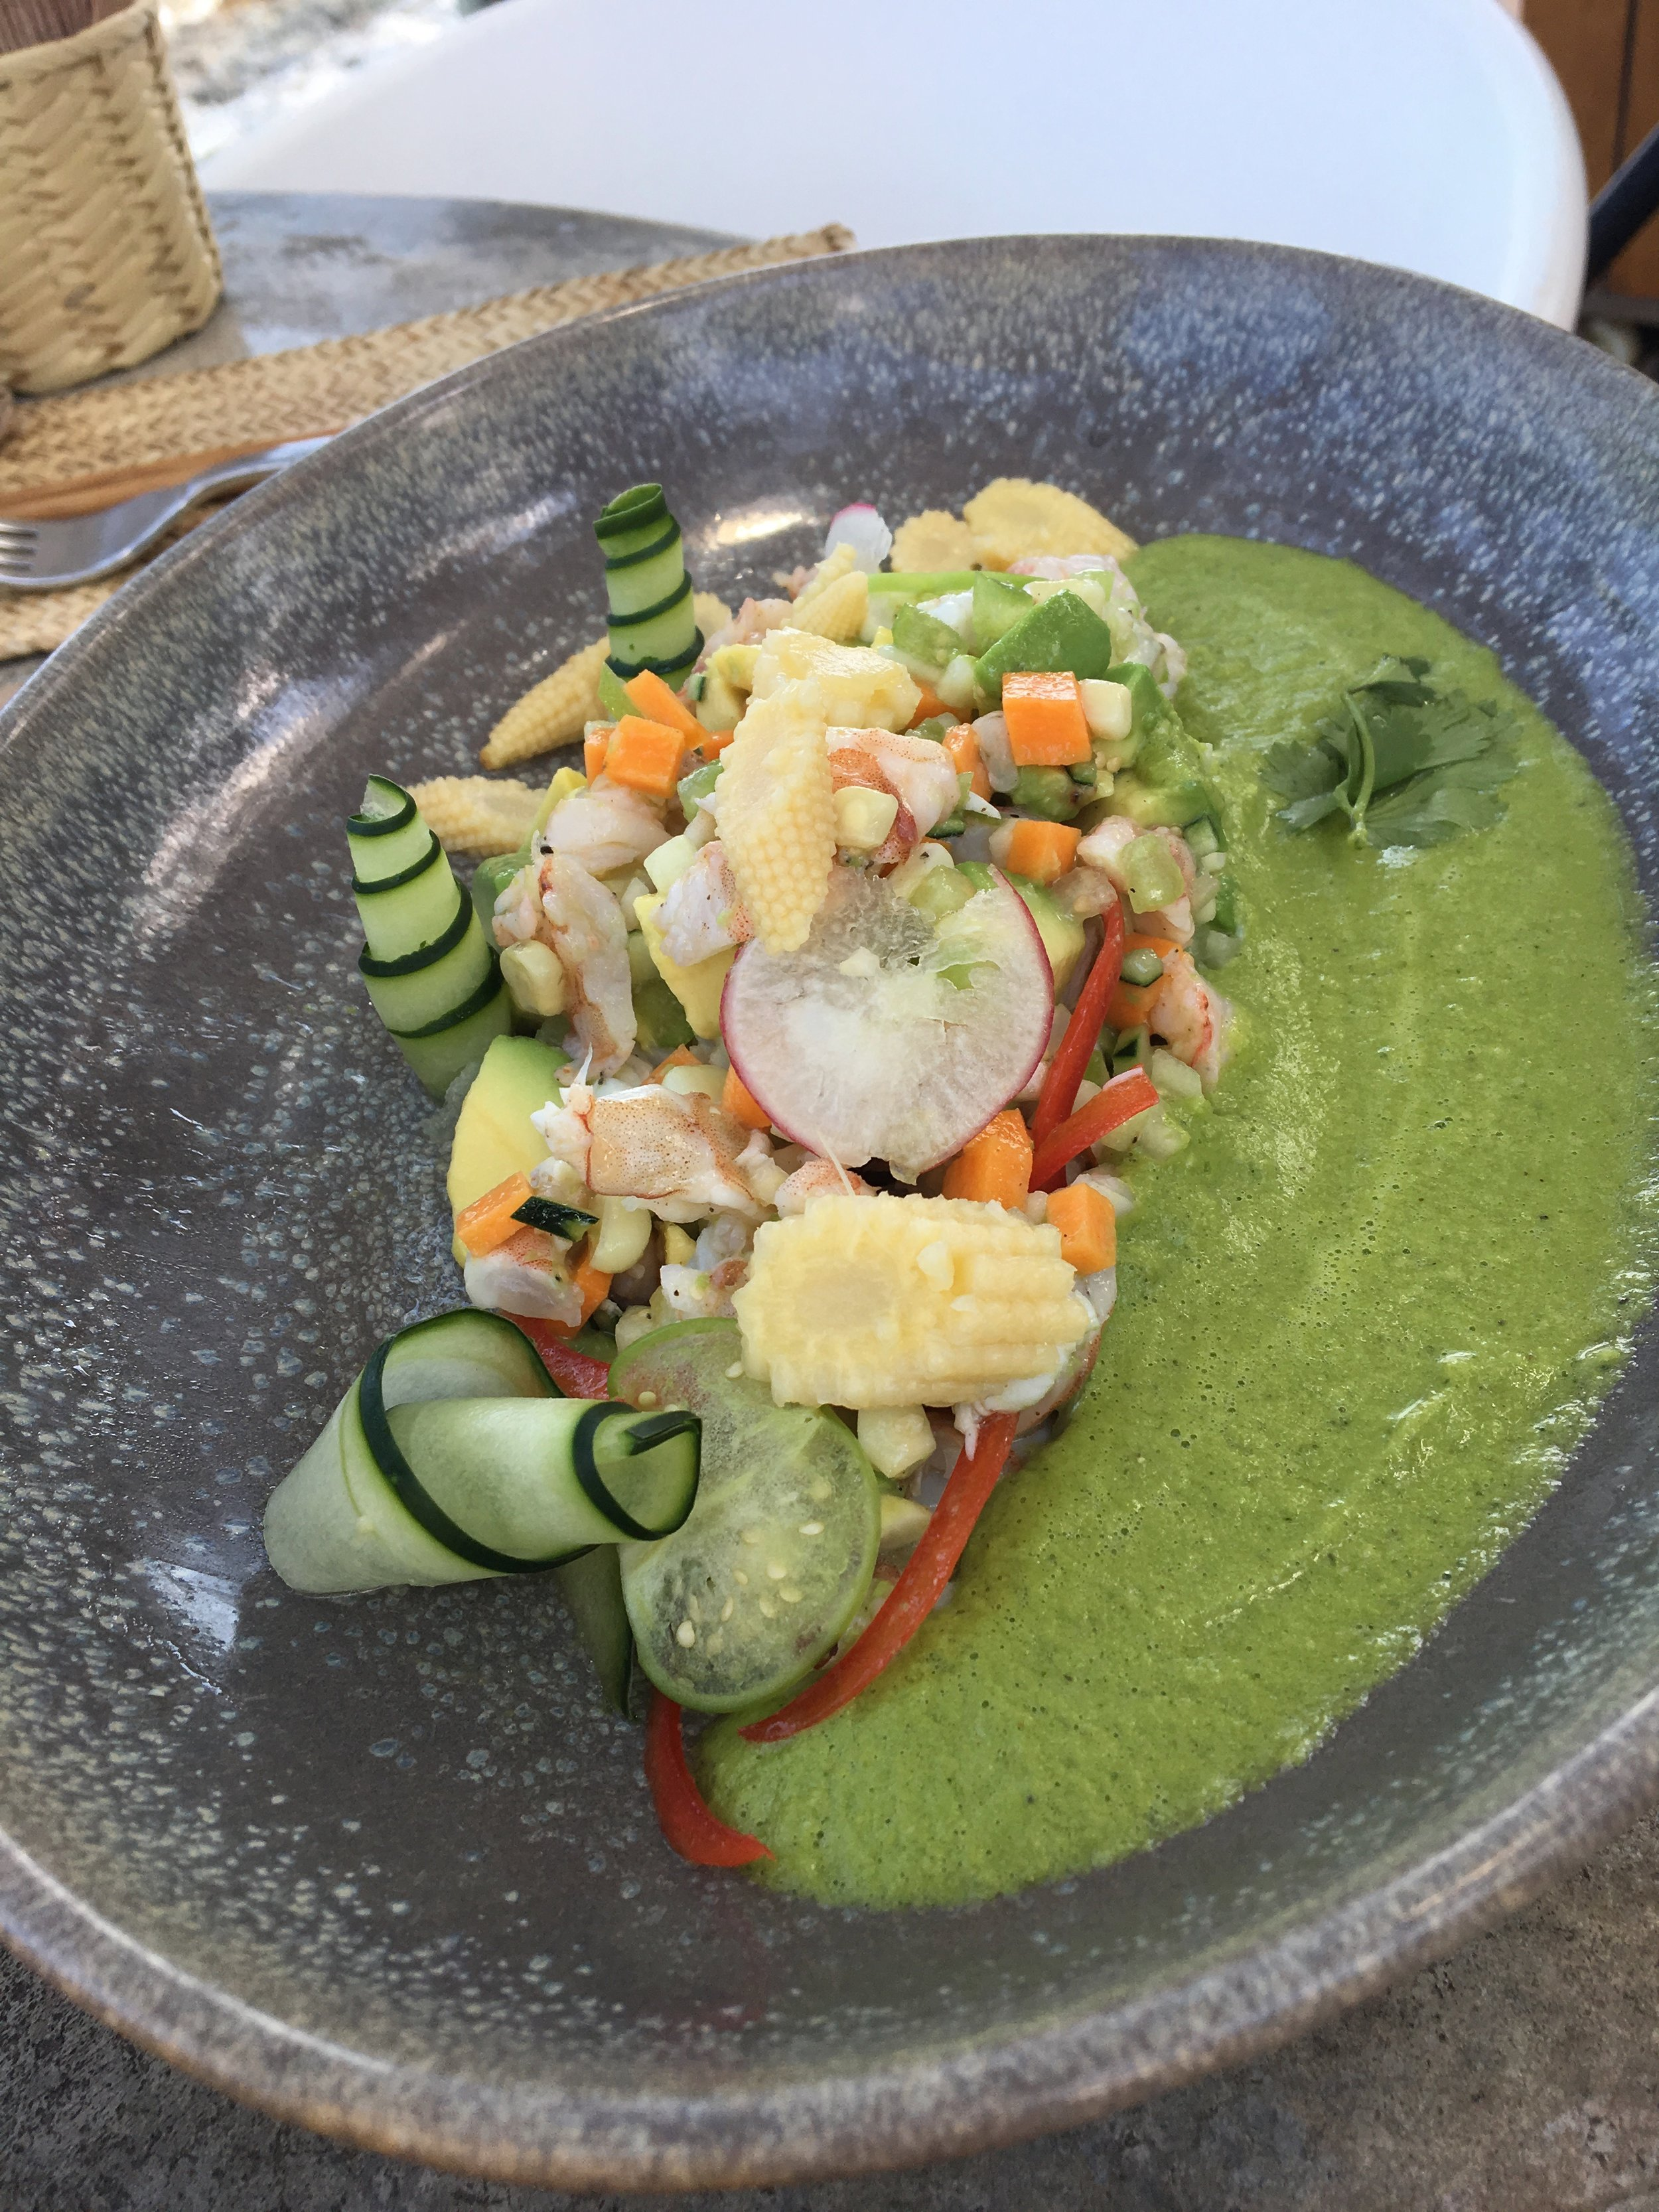 Ceviche at Tulum's  Mezzanine ; have lunch here and drive up the road to visit Zona Arqueologica de Tulum.